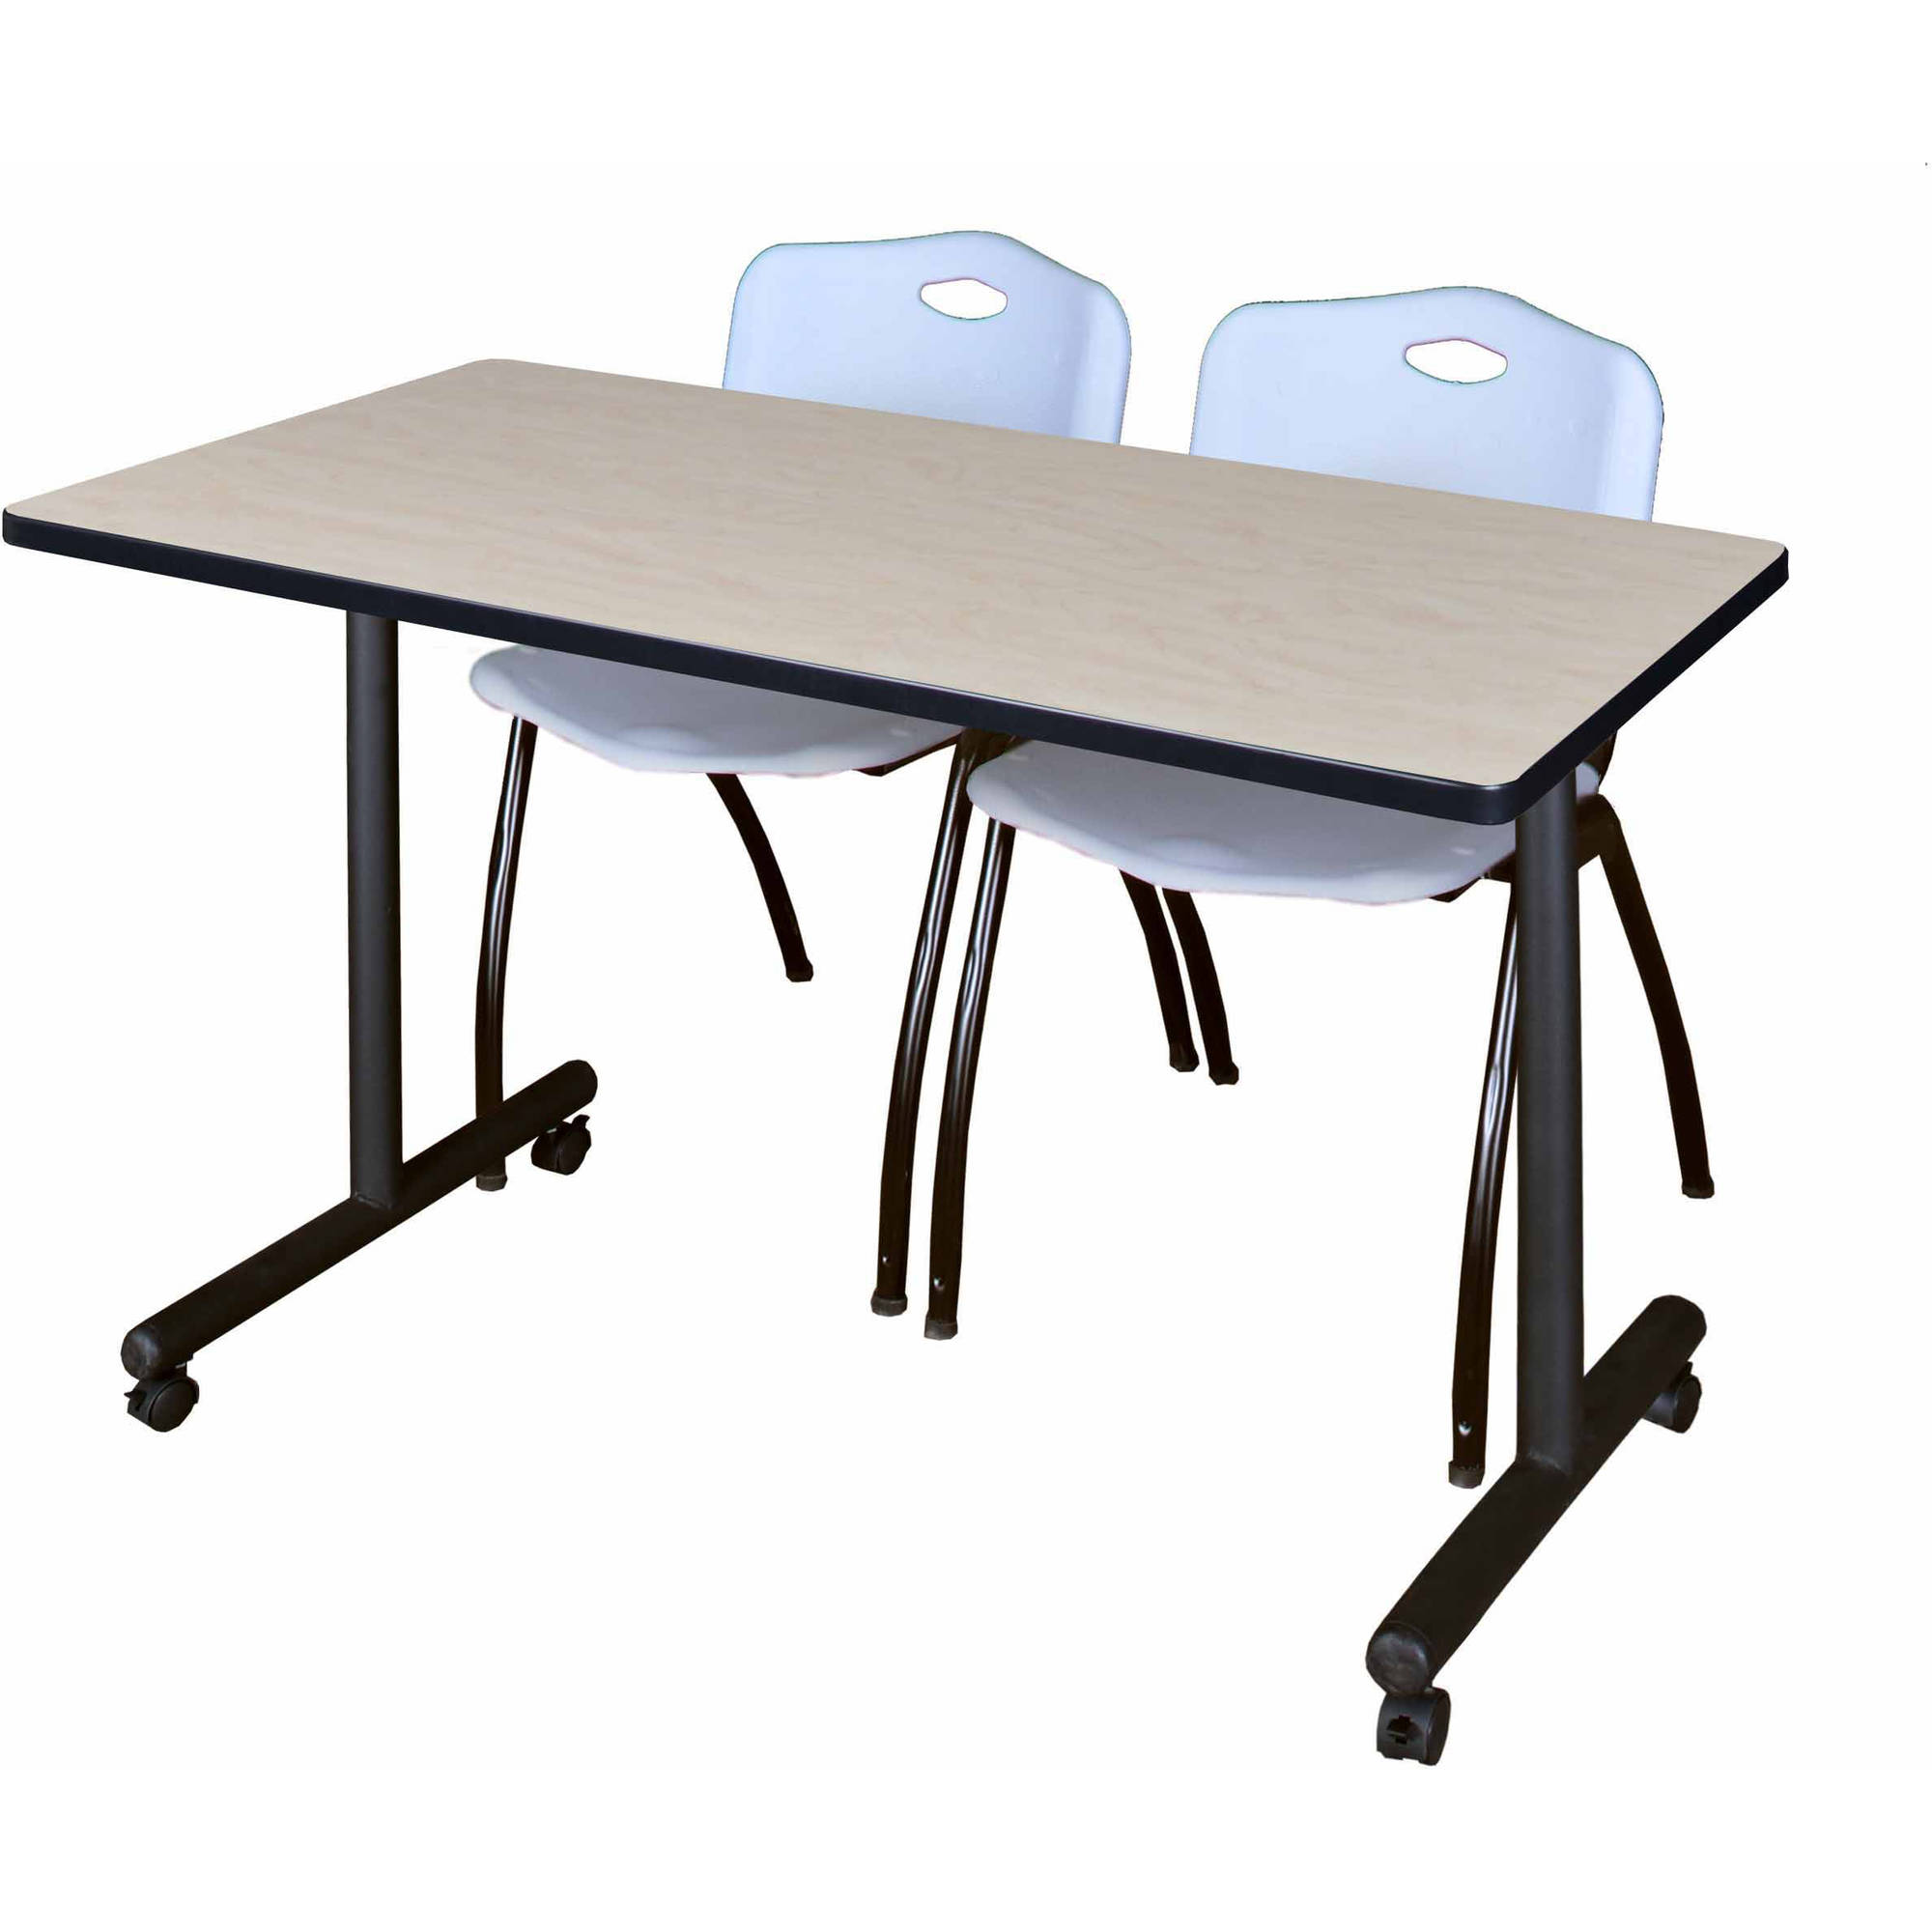 "Kobe 42"" x 24"" Maple Mobile Training Table and 2 'M' Stack Chairs, Multiple Colors"